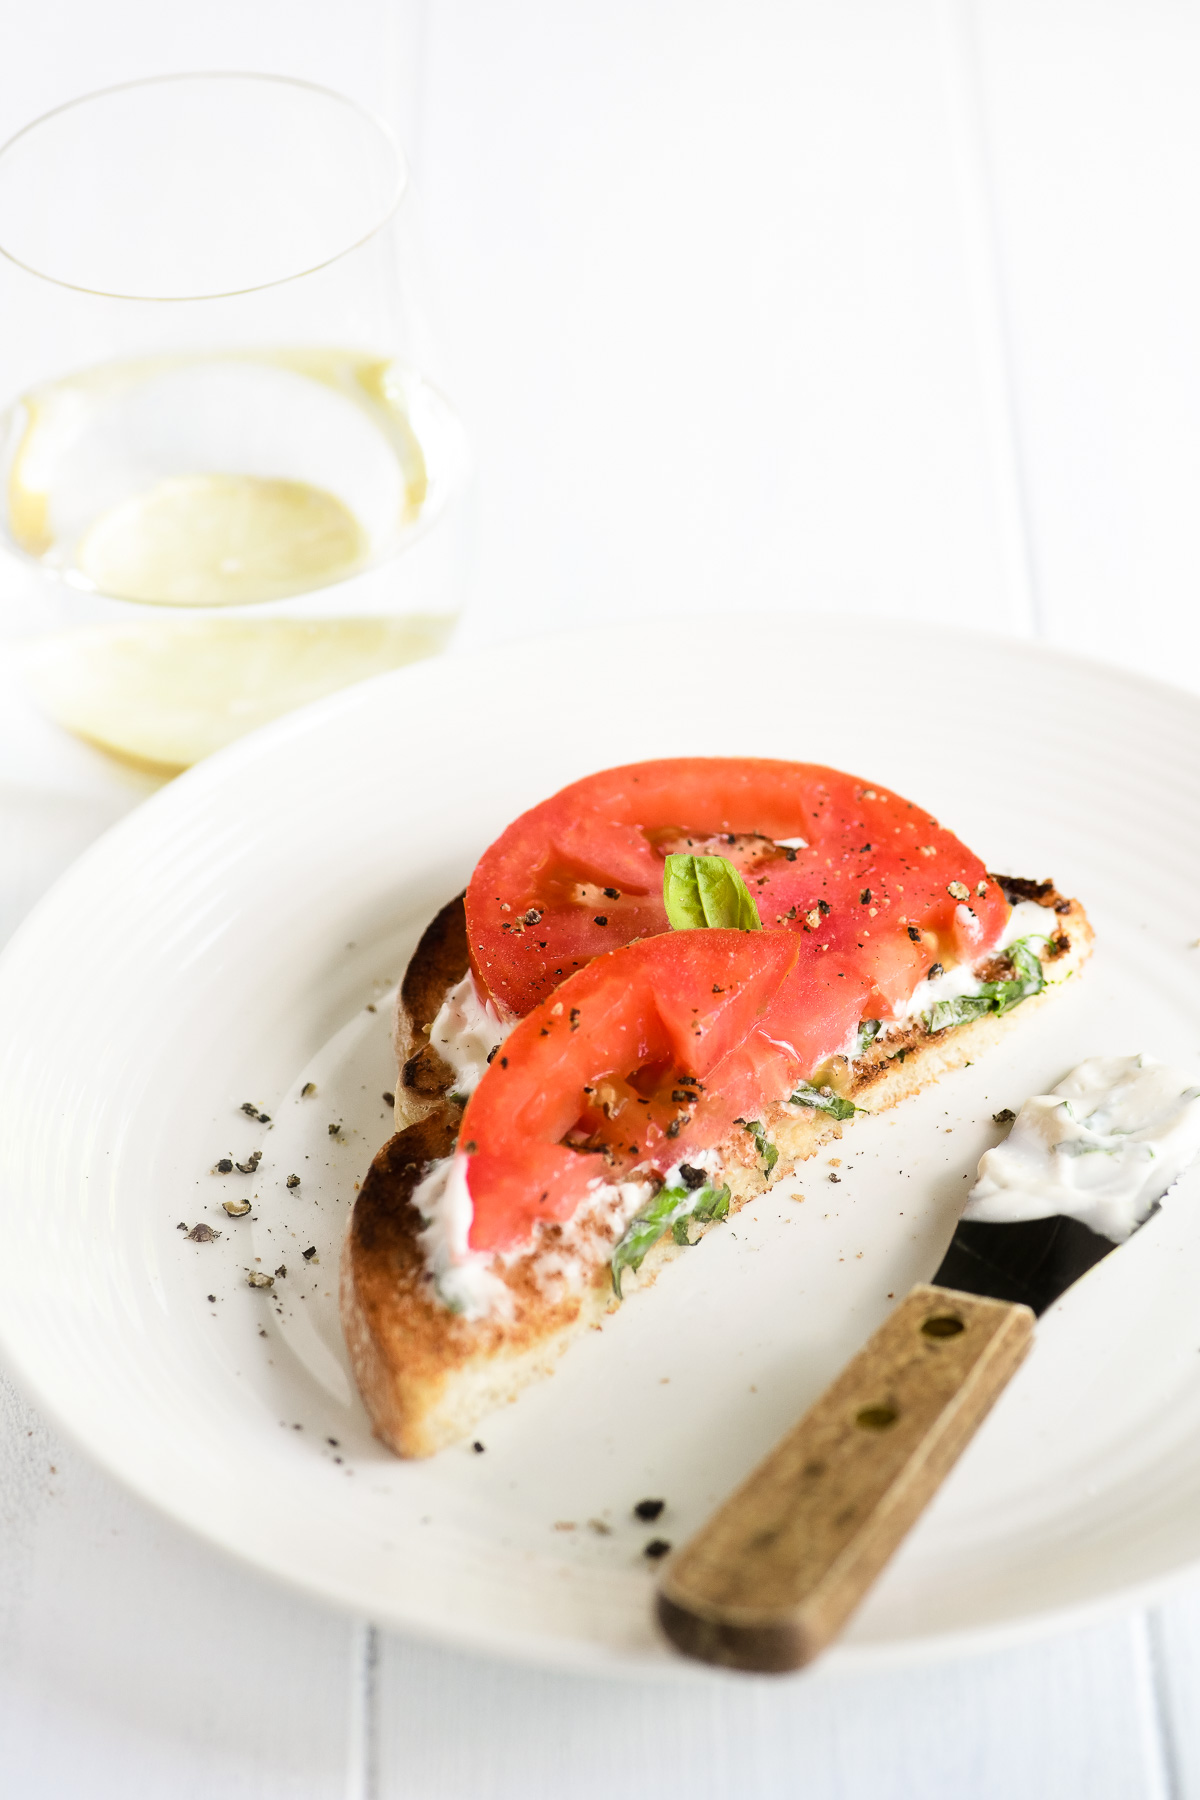 tomato toast with basil mayo and a glass of water